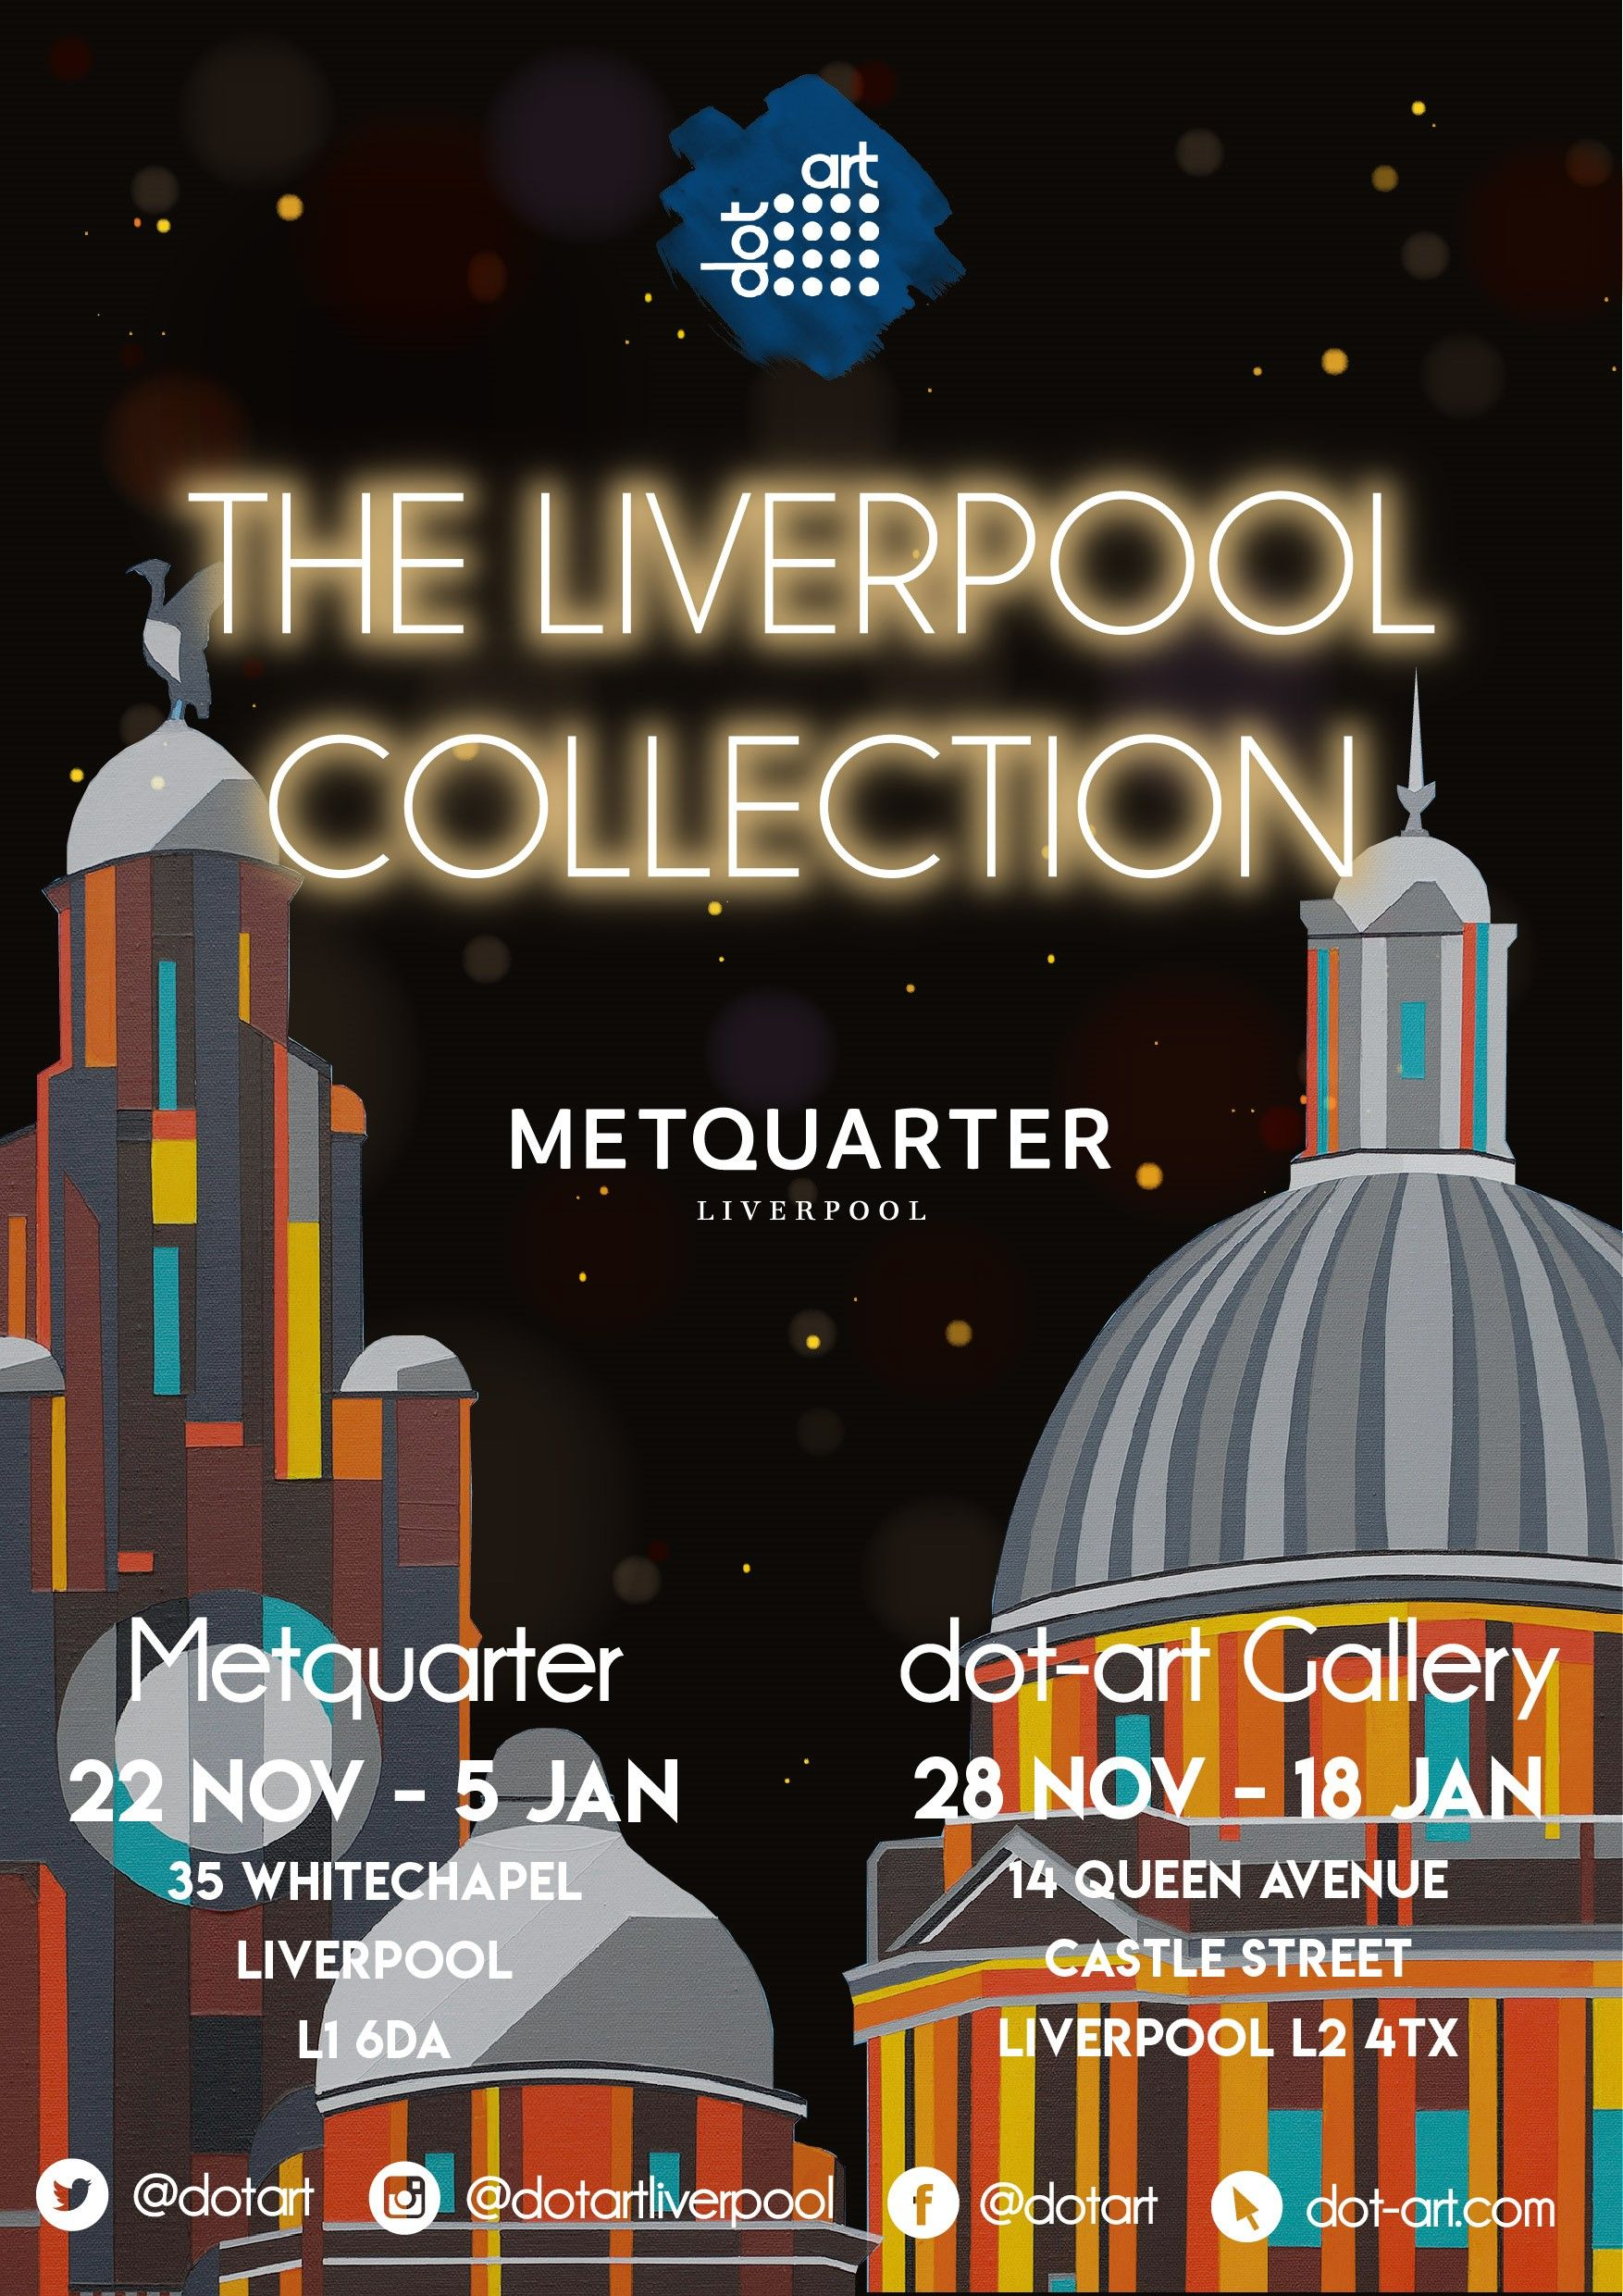 The-Liverpool-Collectio-W20